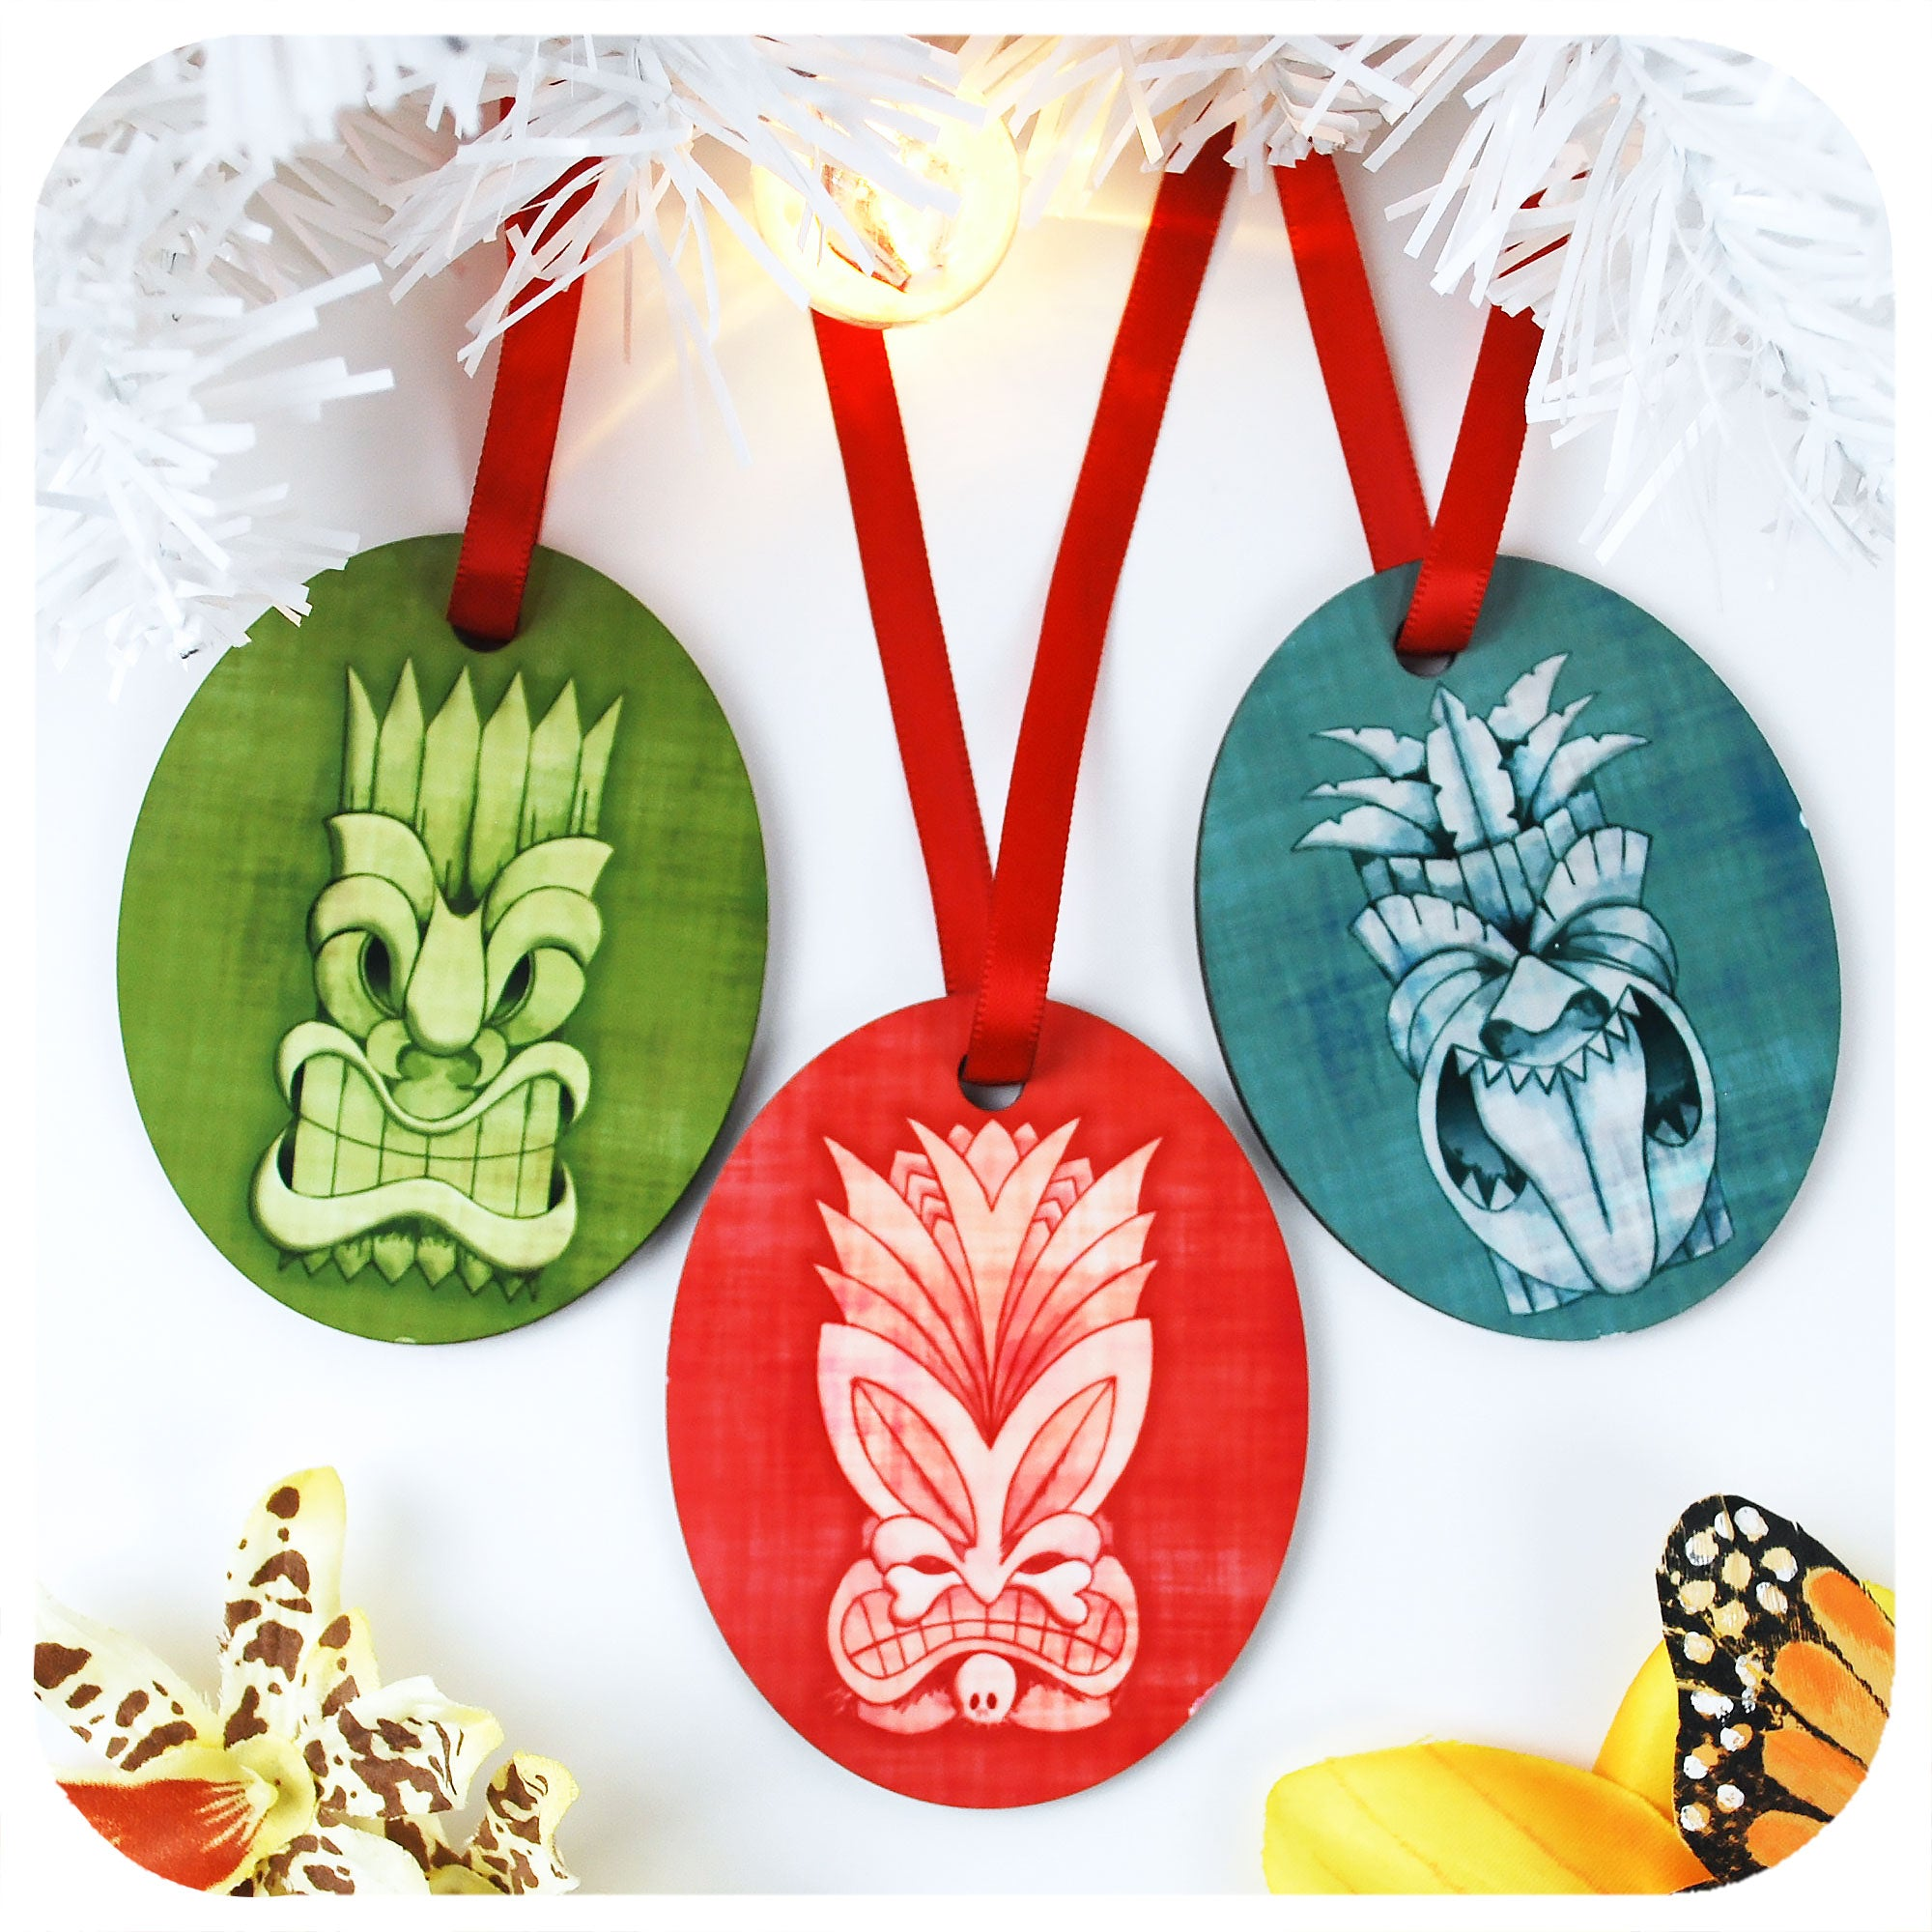 Tiki Christmas Tree Decorations - Set of 3 | The Inkabilly Emporium